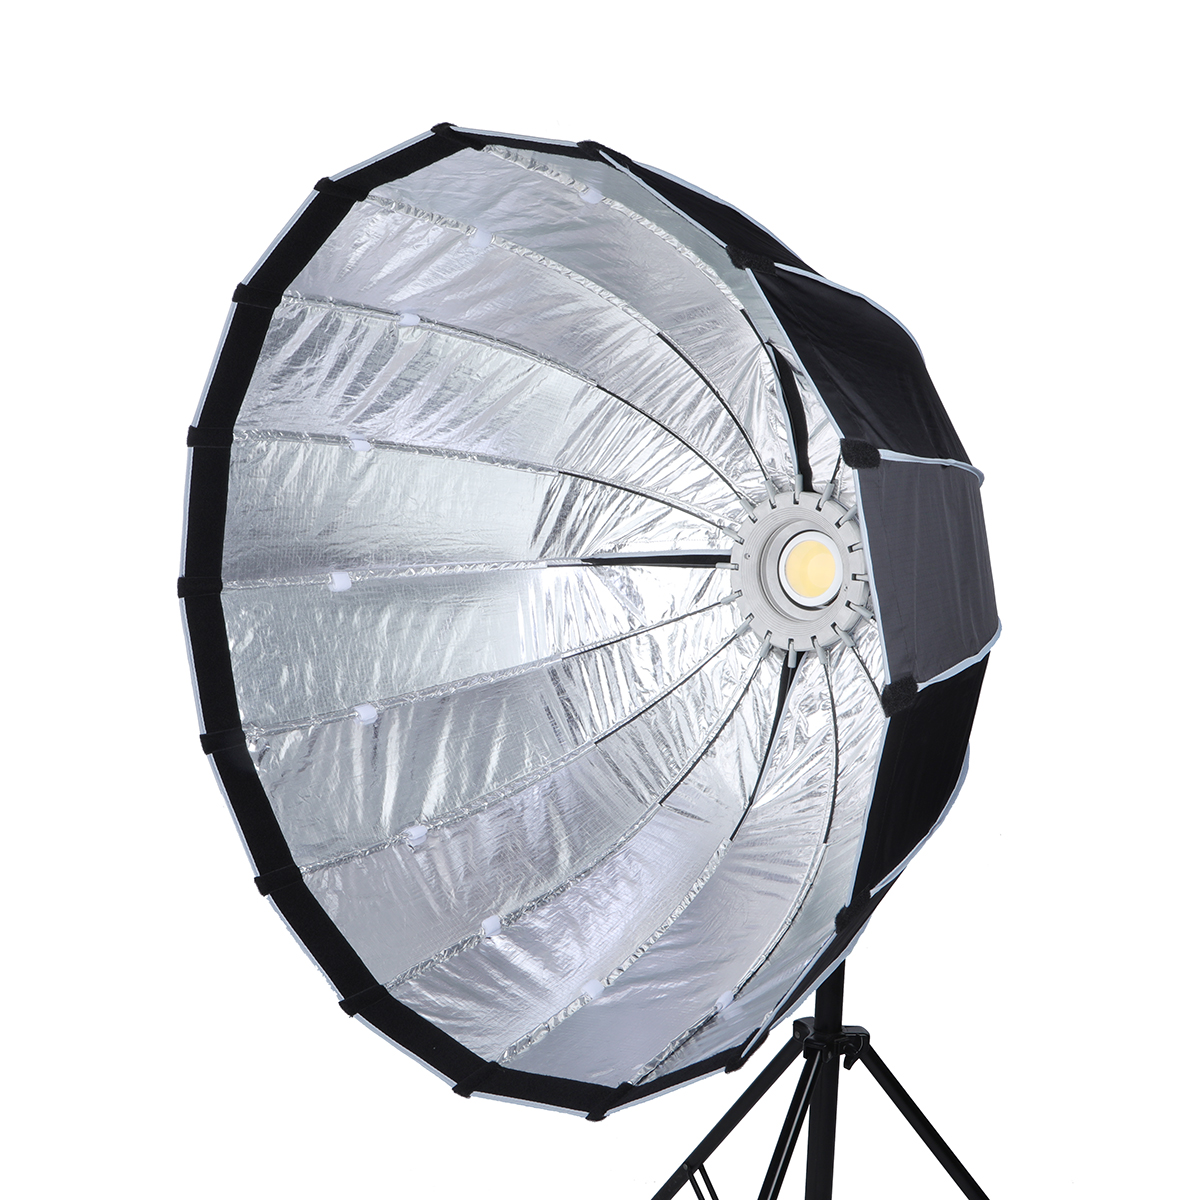 NiceFoto LED-90cm  softbox  Quick set-up deep softbox with grid parabolic softbox for the professional LED video light with Bow